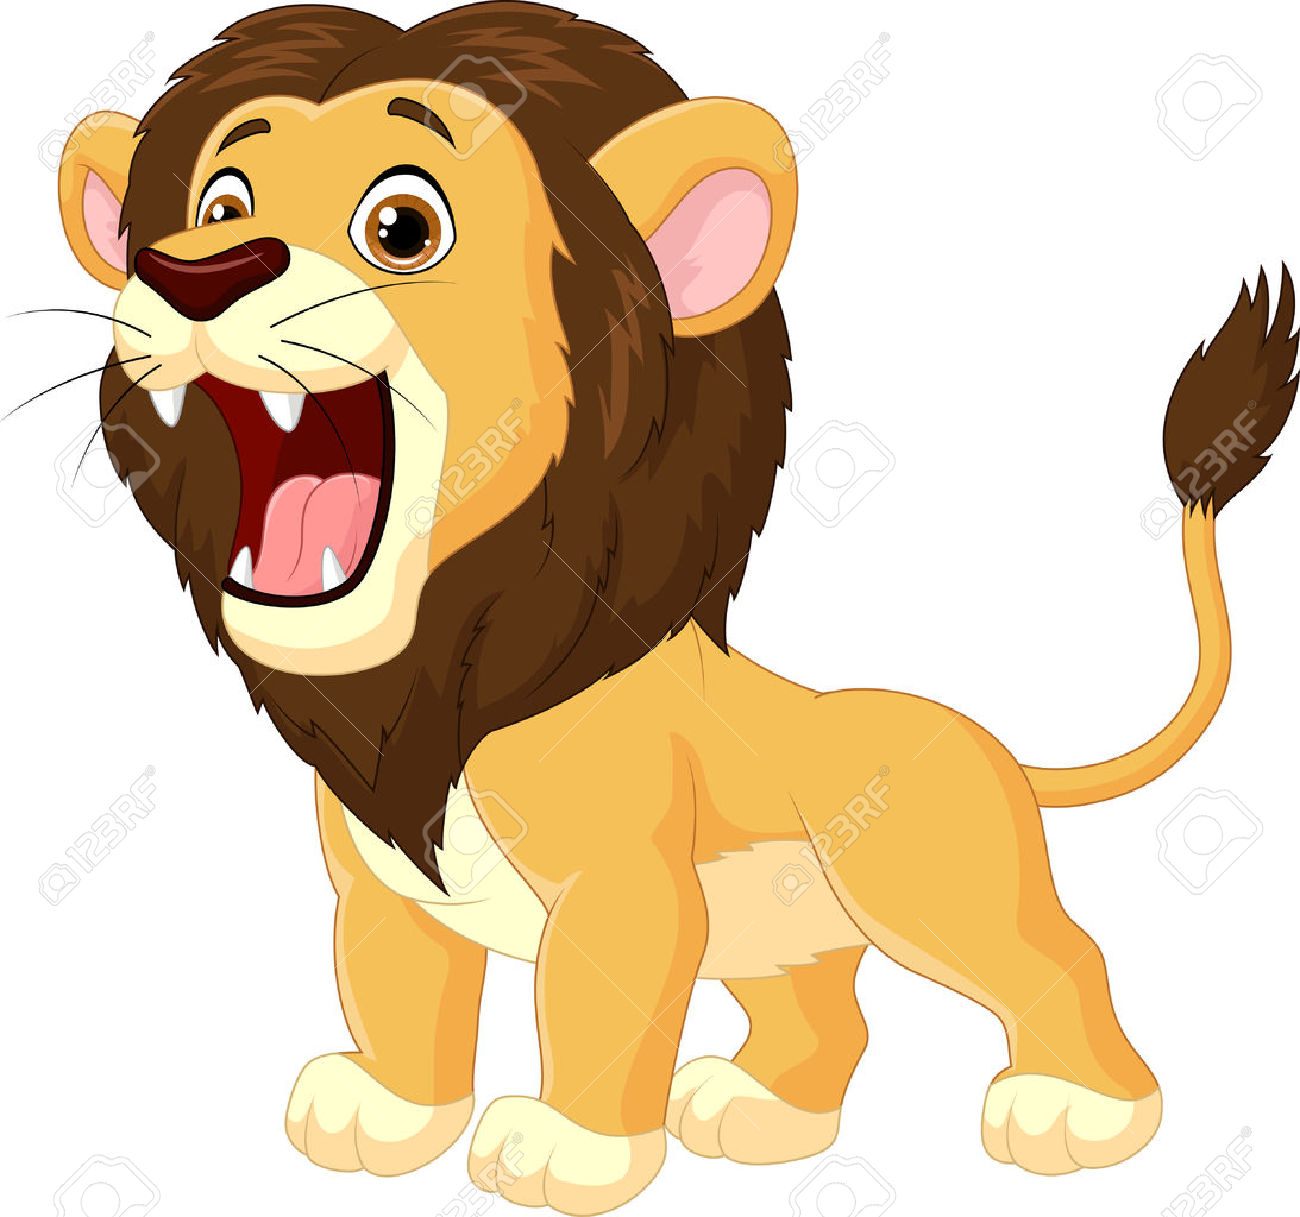 Lions clipart open mouth. Lion roaring free download